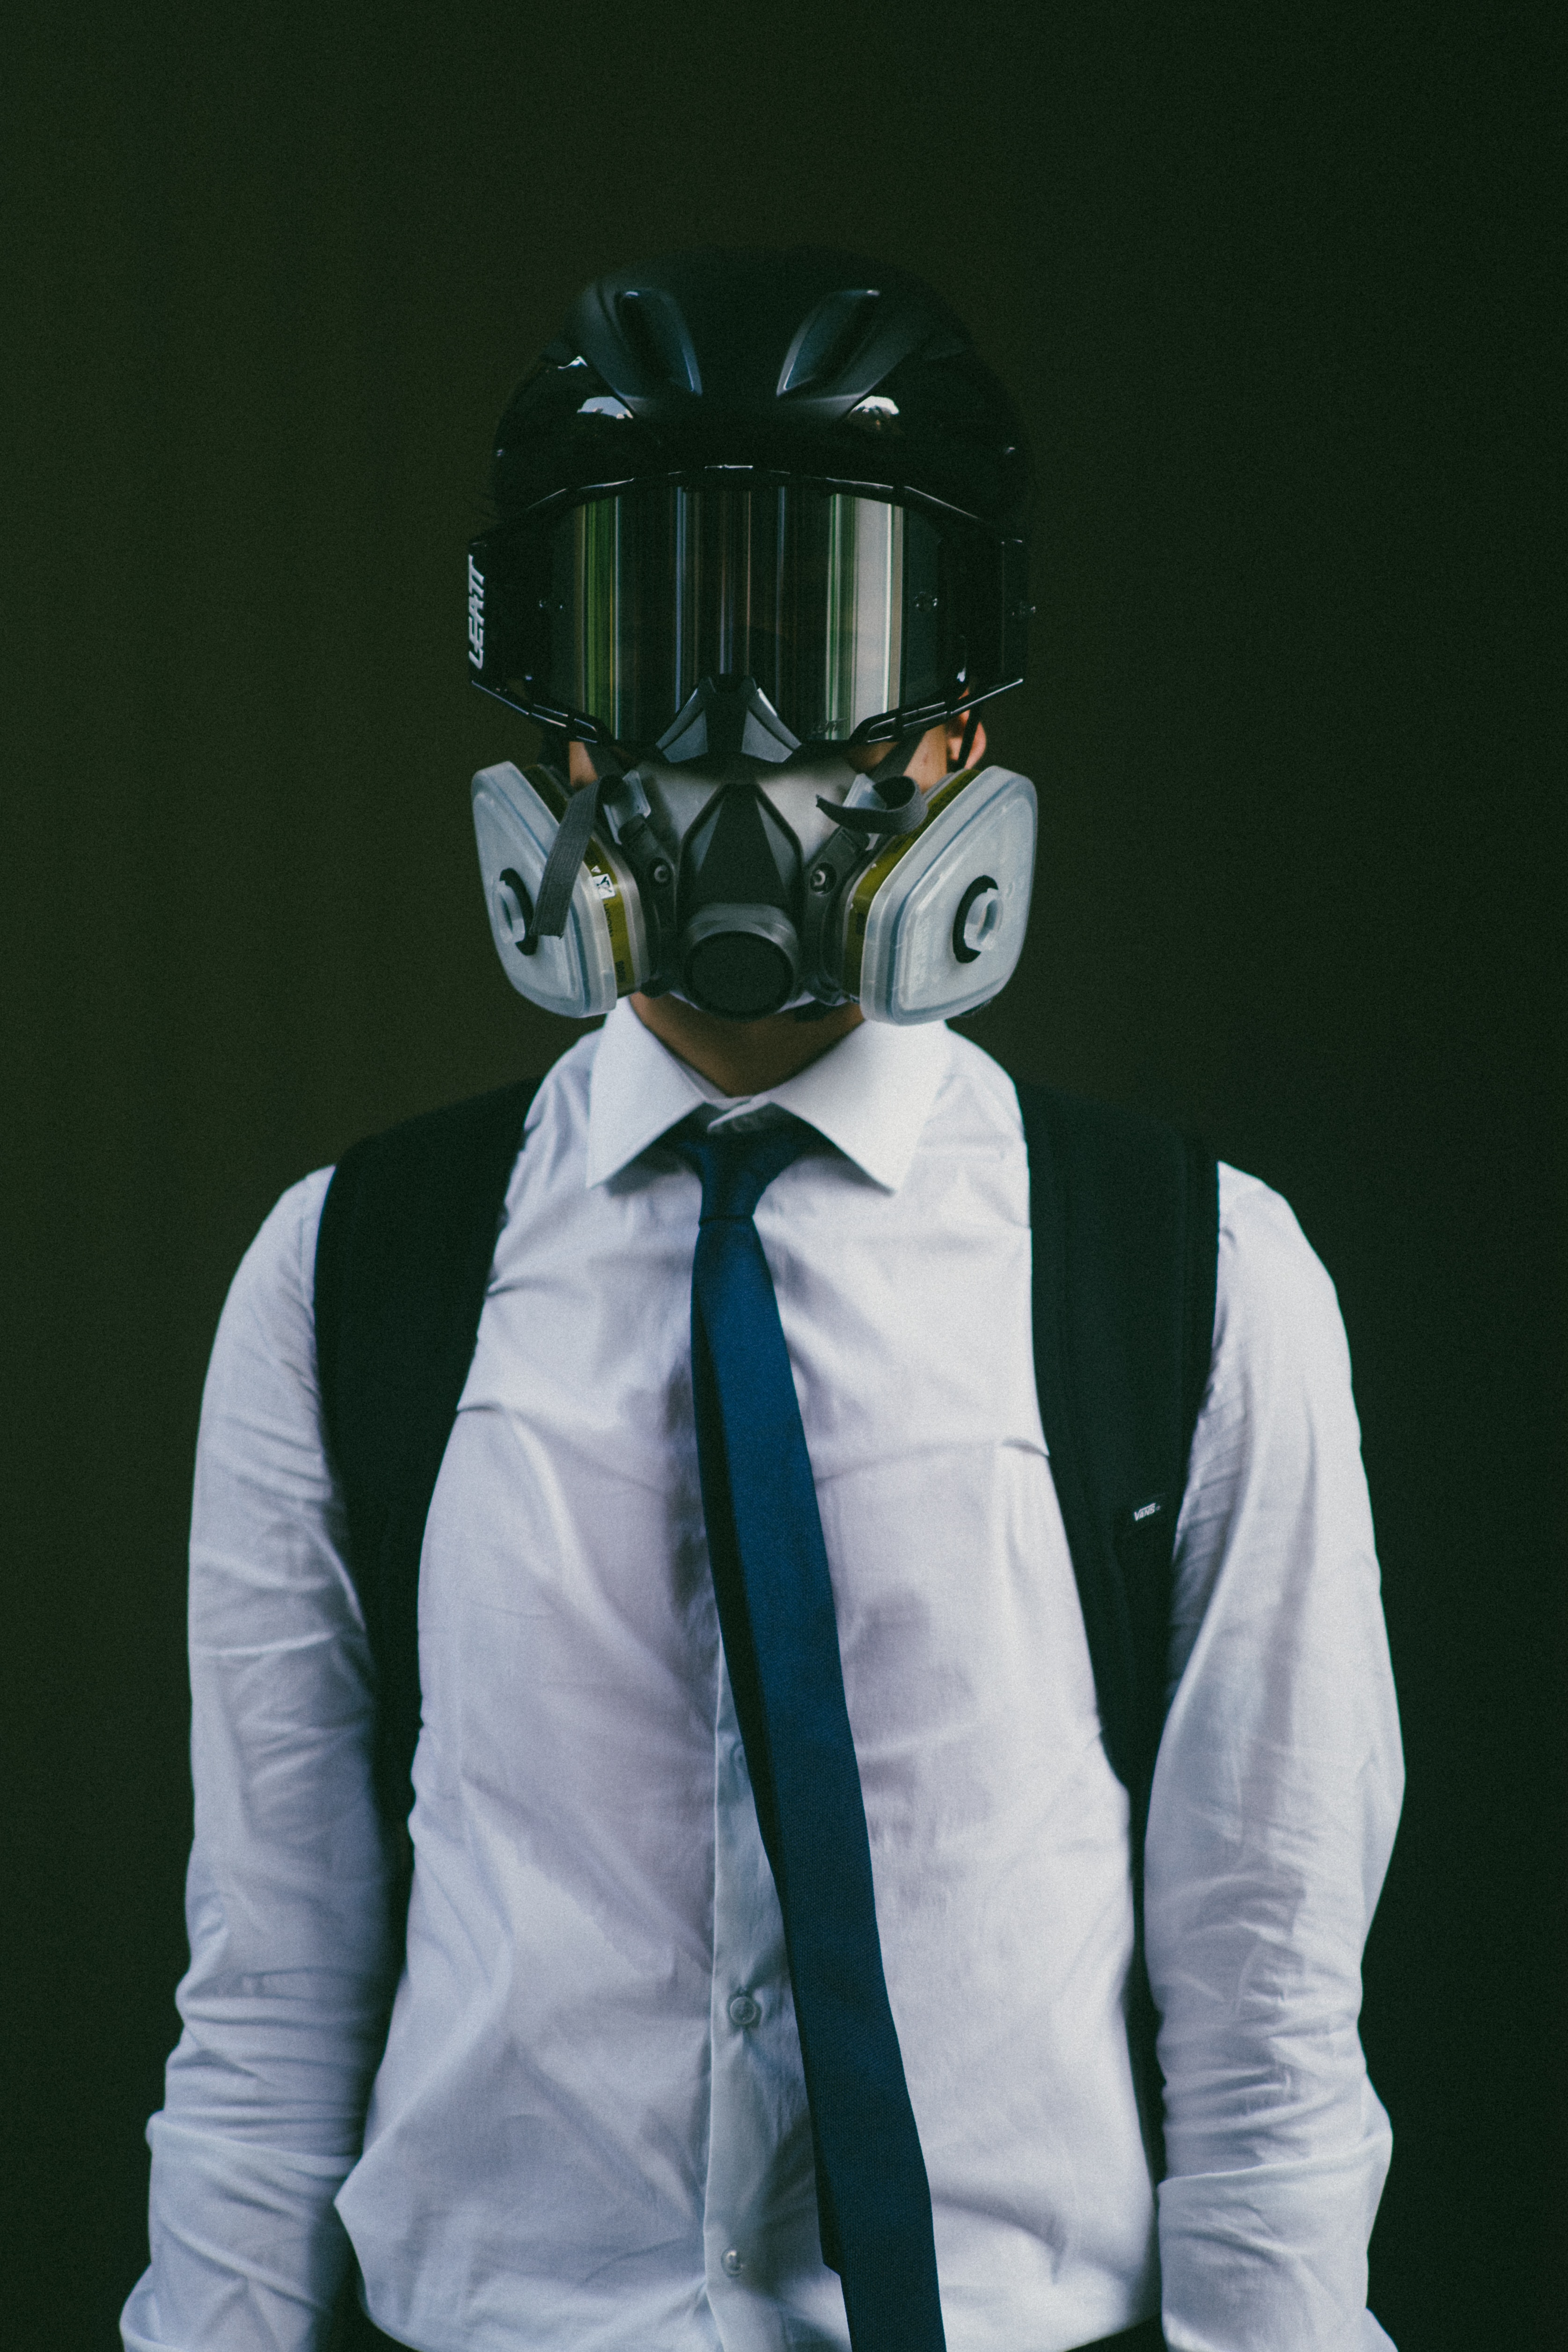 Best Mask wallpapers for phone screen